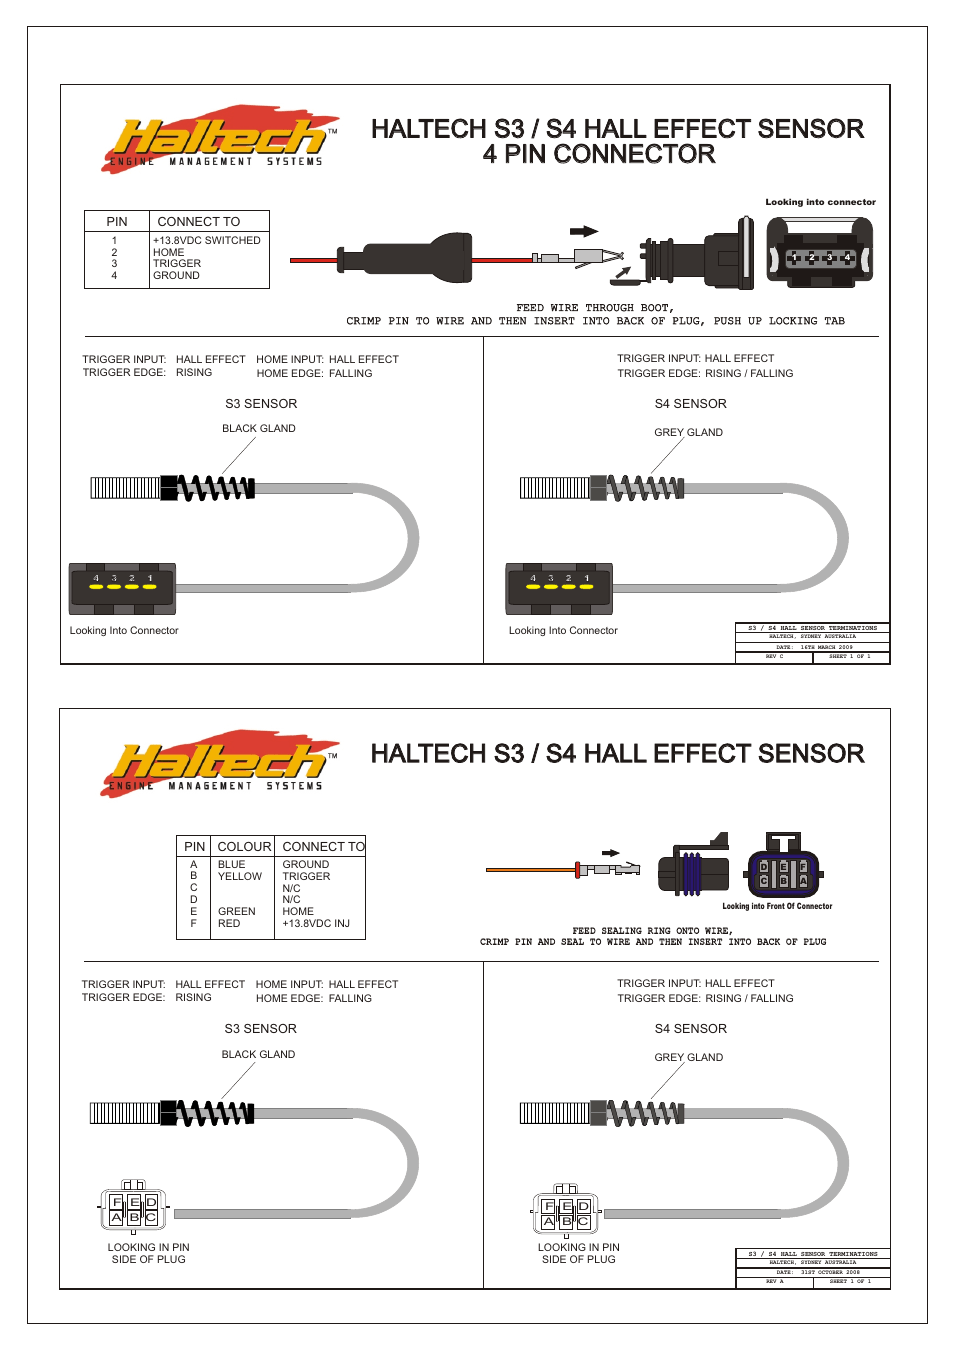 hight resolution of  wiring diagram haltech s3 s4 hall effect sensor 4 pin connector haltech s3 s4 rh manualsdir com hall